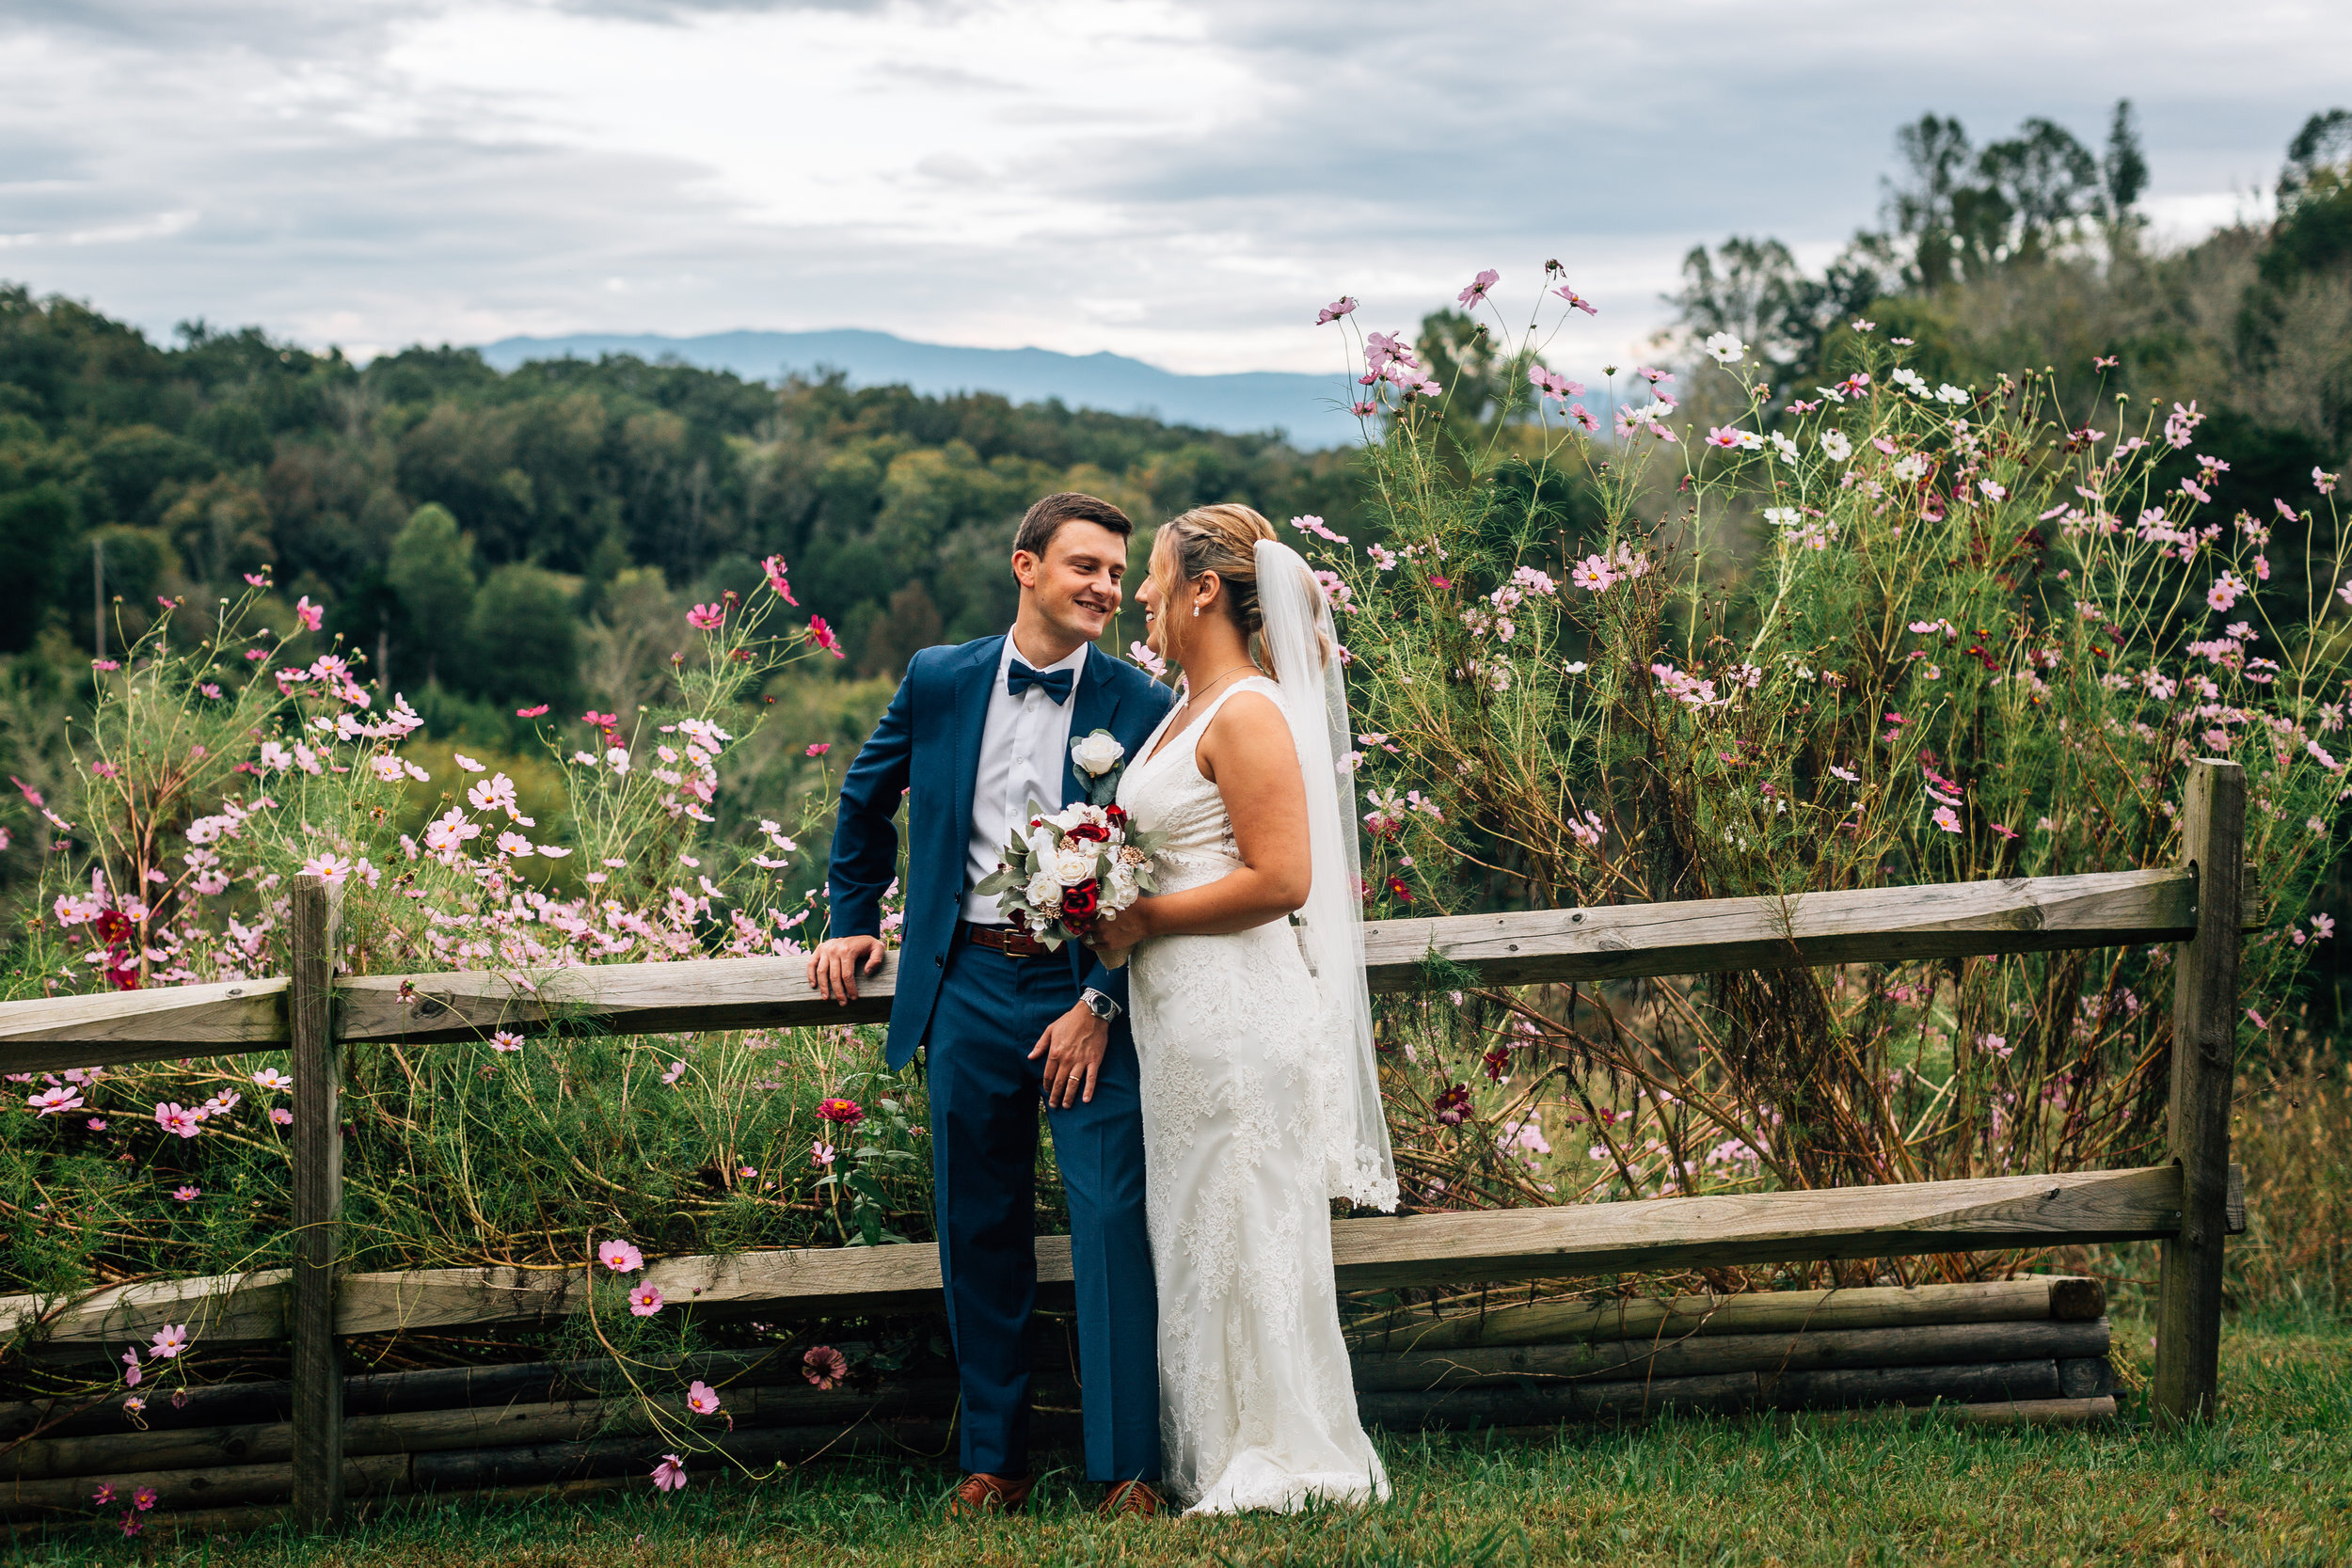 a couple near a fence with flowers on it at flower mountains wedding venue in gatlinburg tennessee after eloping